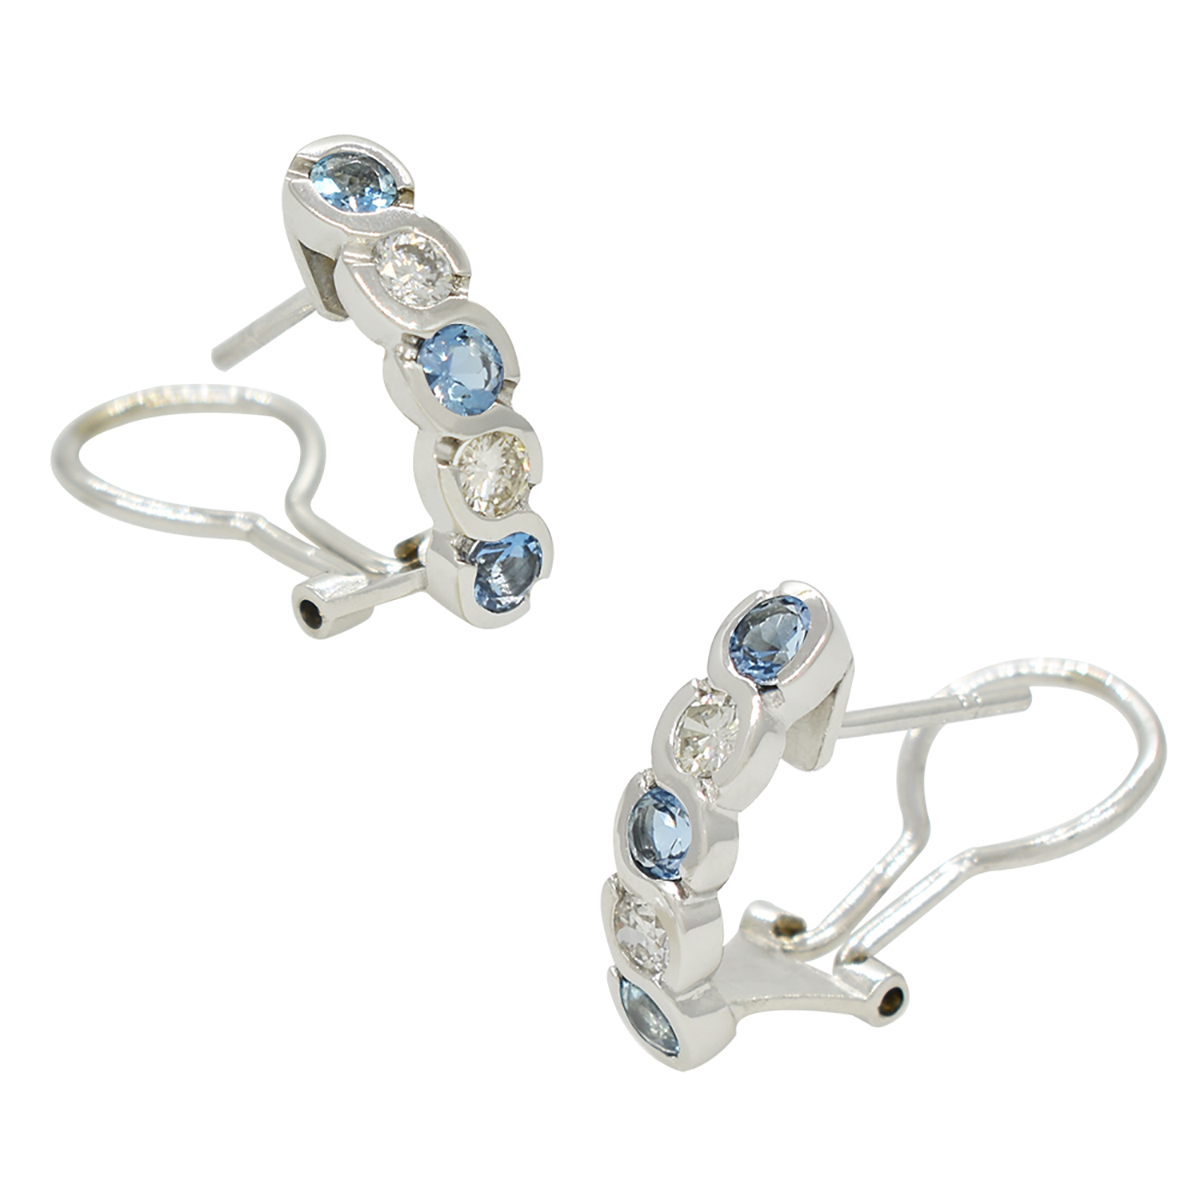 drop-earrings-in-18k-white-gold-with-diamonds-and-aquamarines-in-bezel-setting